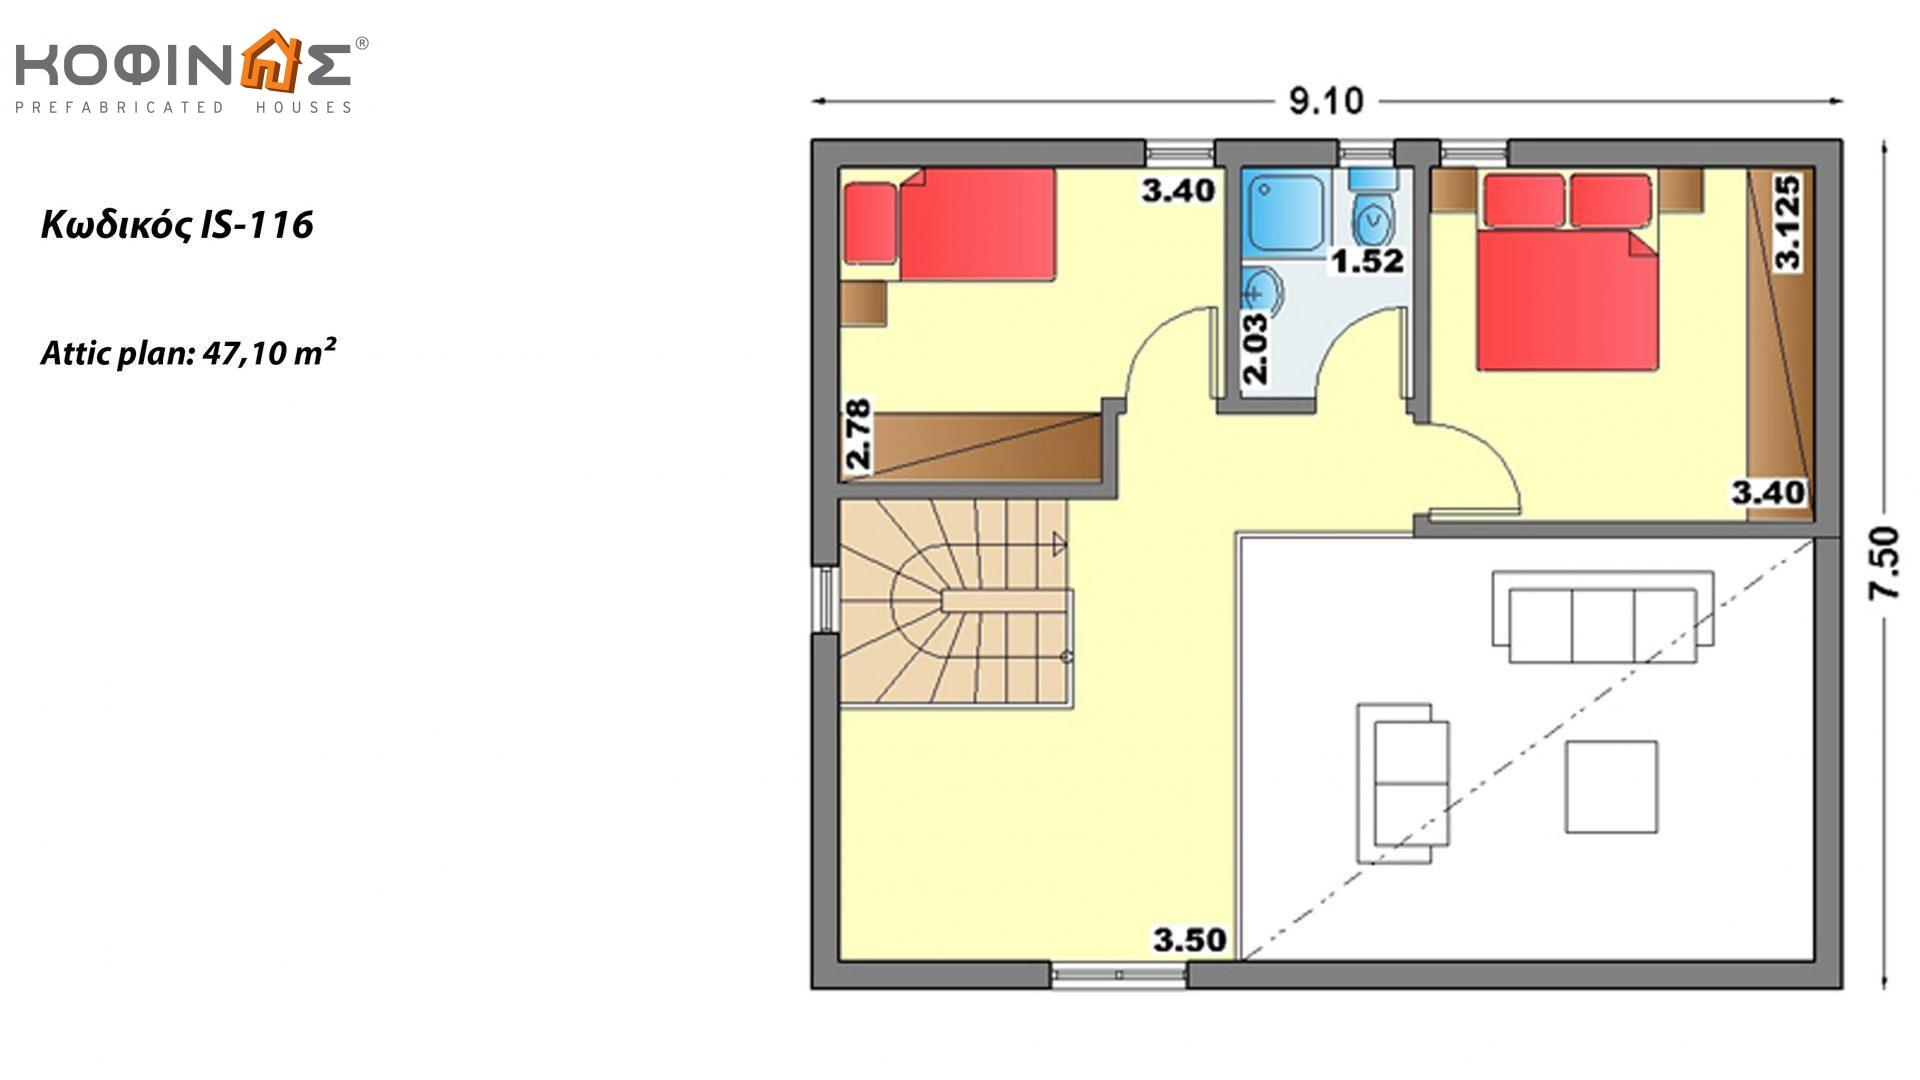 1-story house with attic IS-116, total surface of 116,90 m² ,roofed areas 26,70 m²